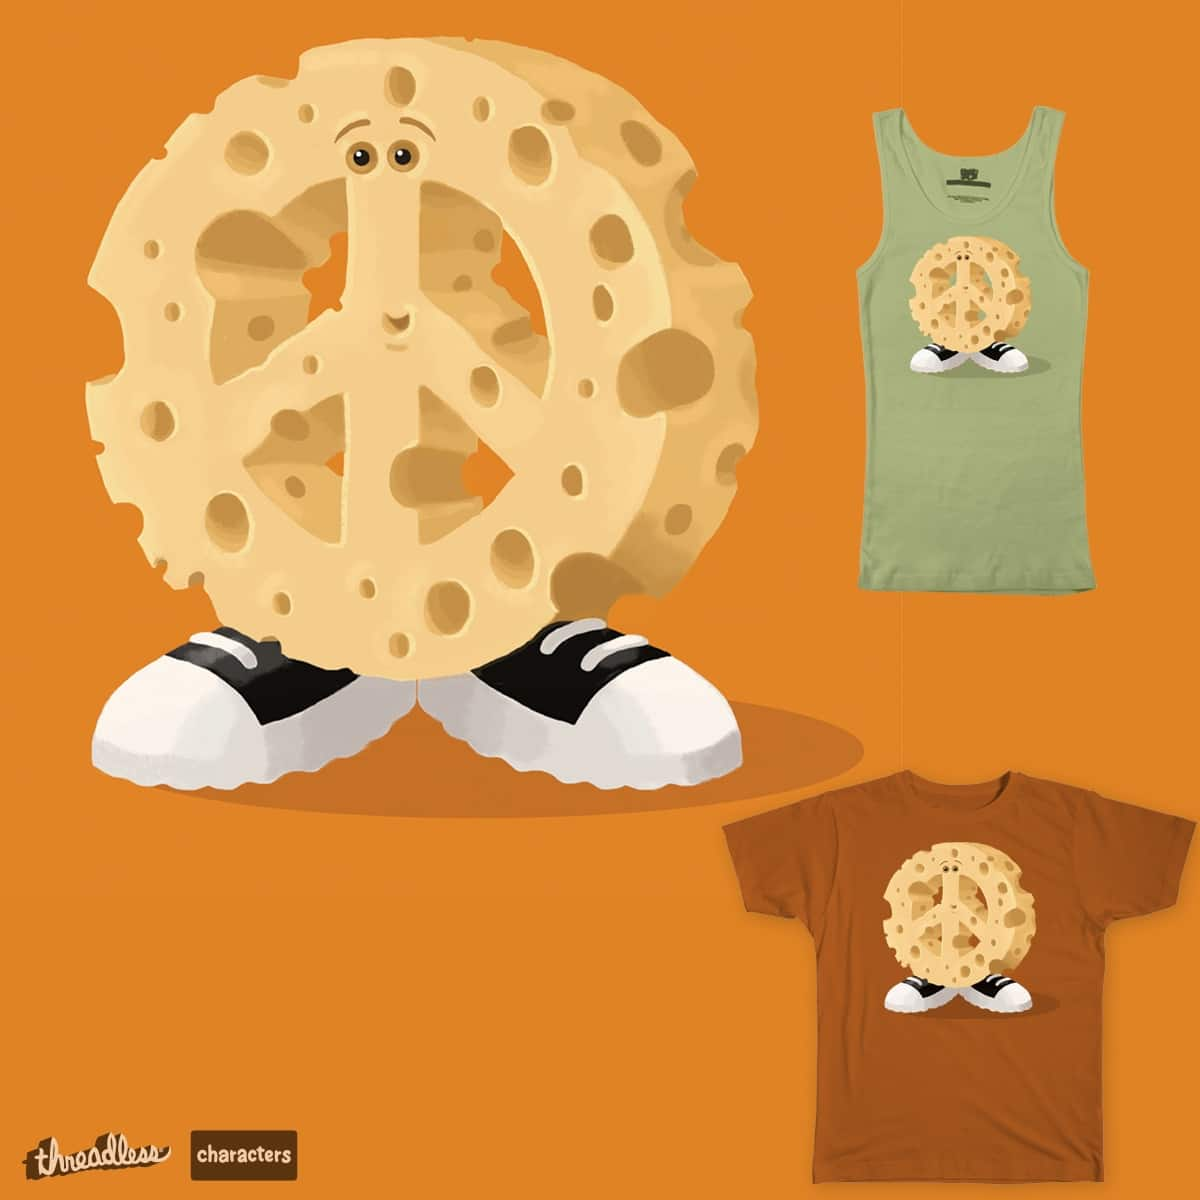 The Peace O' Cheese Guy by The Pencil and Mouse on Threadless